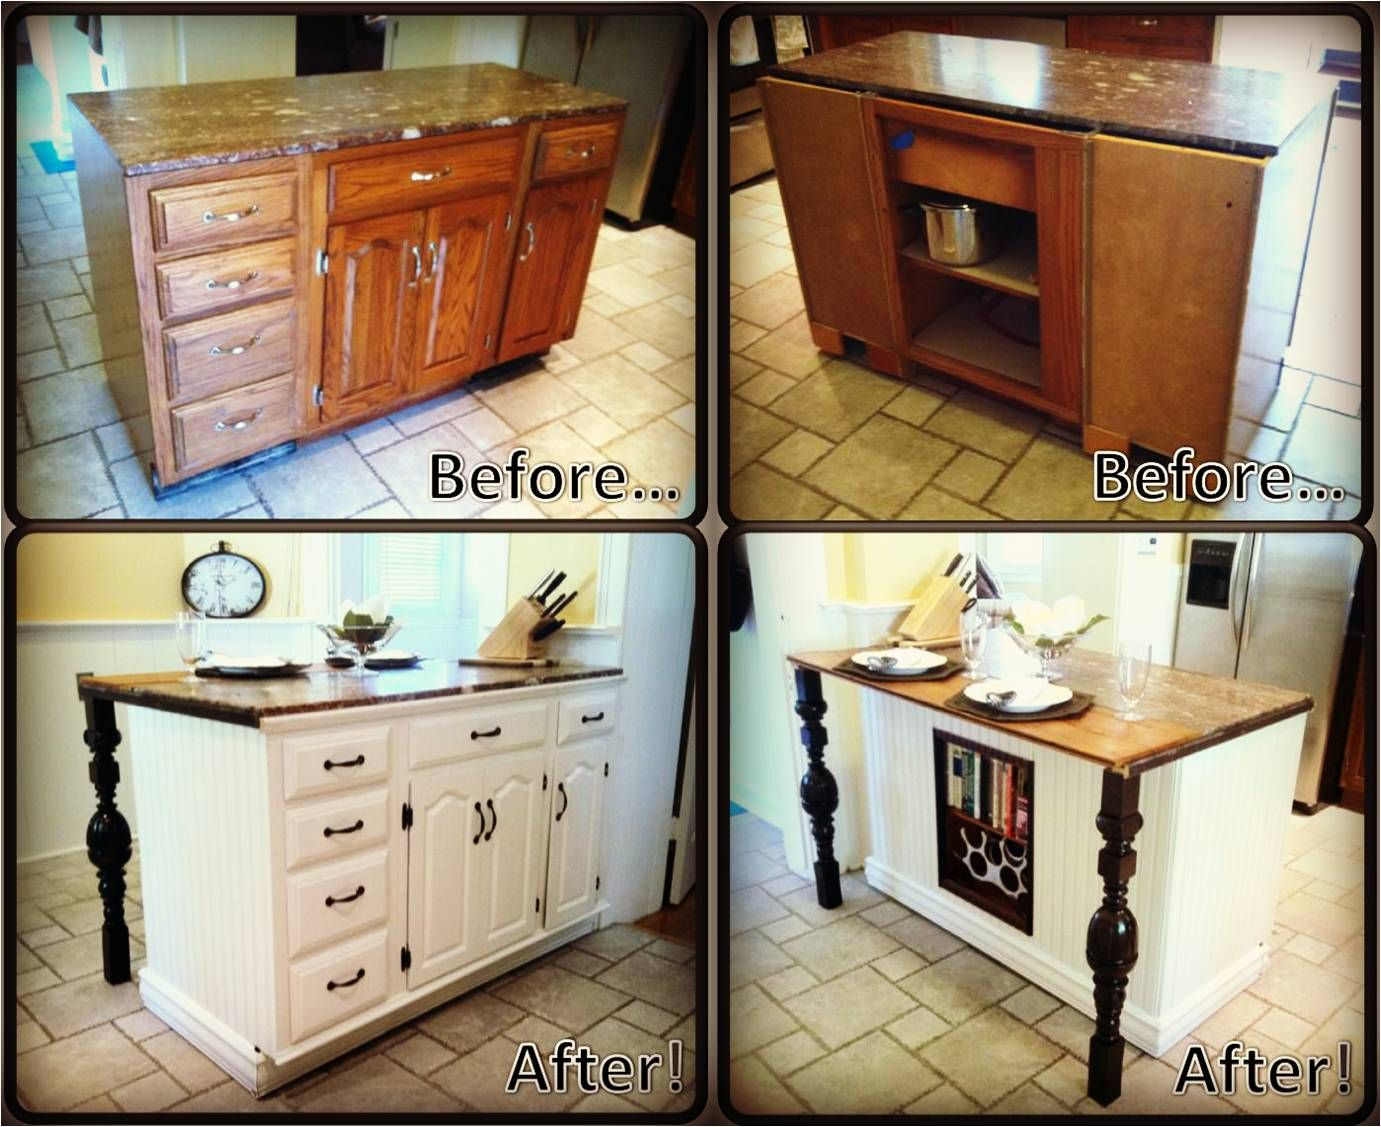 Diy Kitchen Island diy kitchen island renovation | old bathrooms, wood trim and vanities